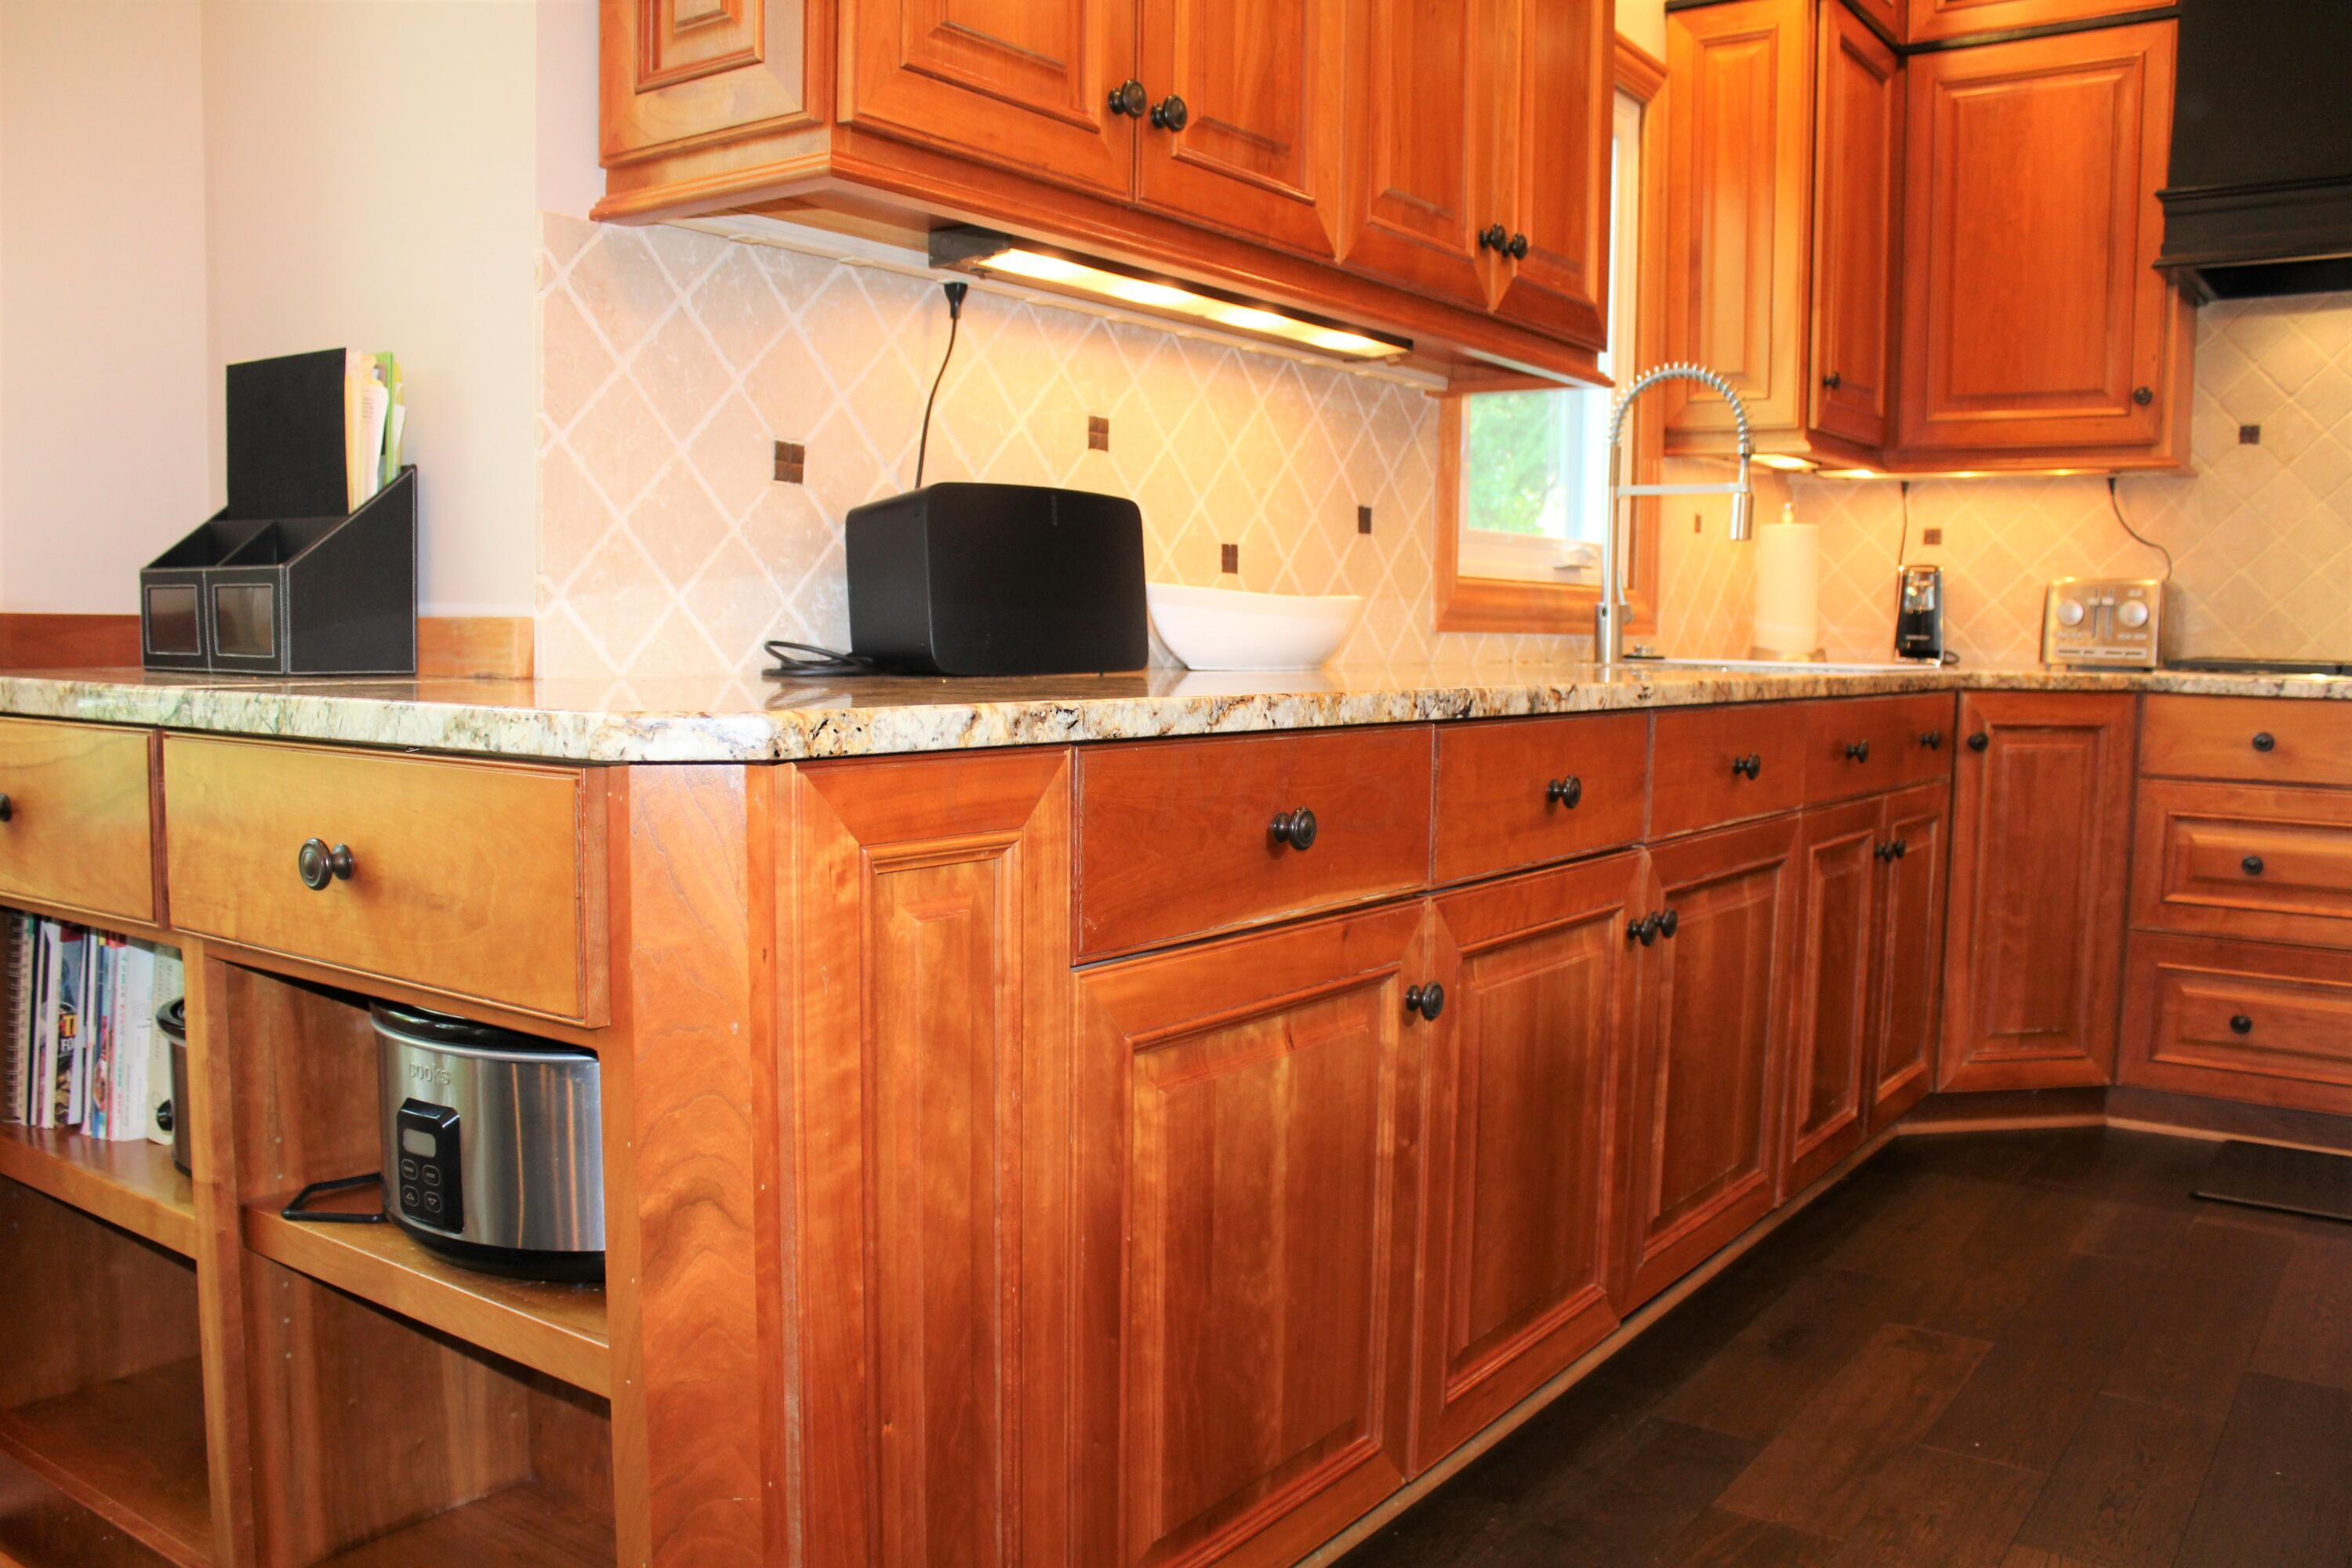 Cook book space & under cabinet lighting